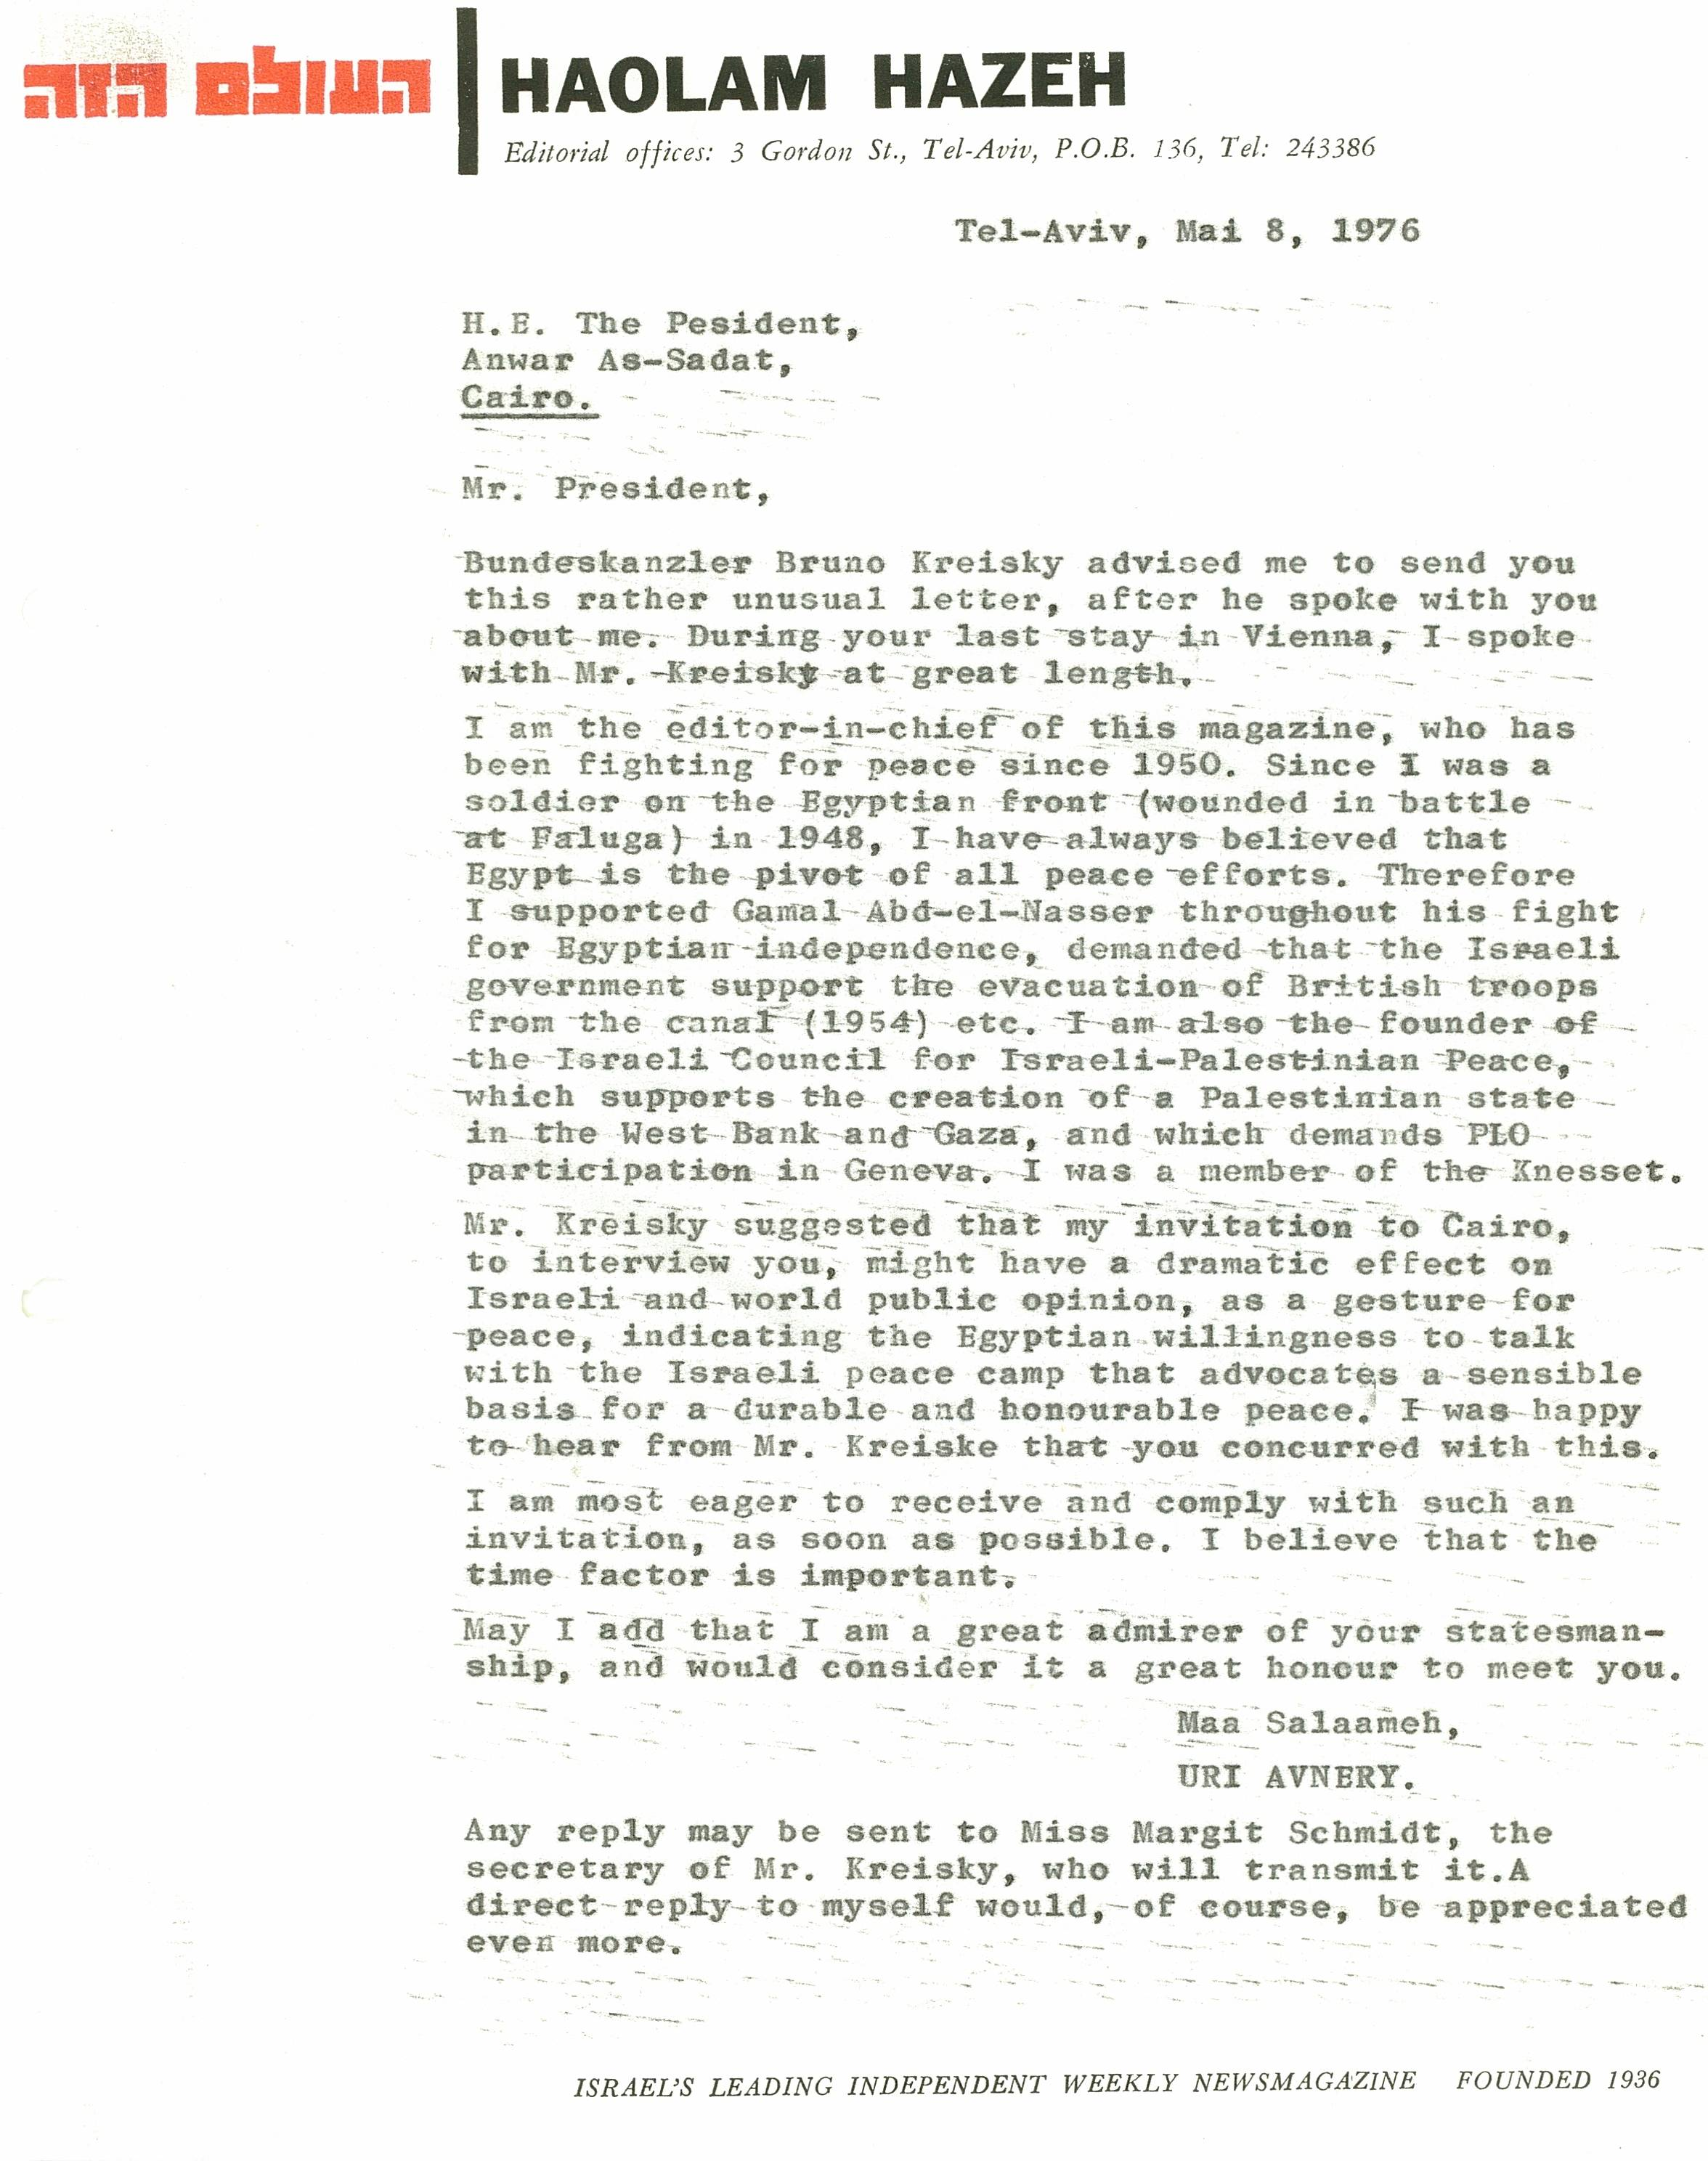 uri avnery documents 1976 a year before sadat s to jeru m a letter avnery sent him on kanzler bruno kreisky s advice asking him for an interview in vienna as a